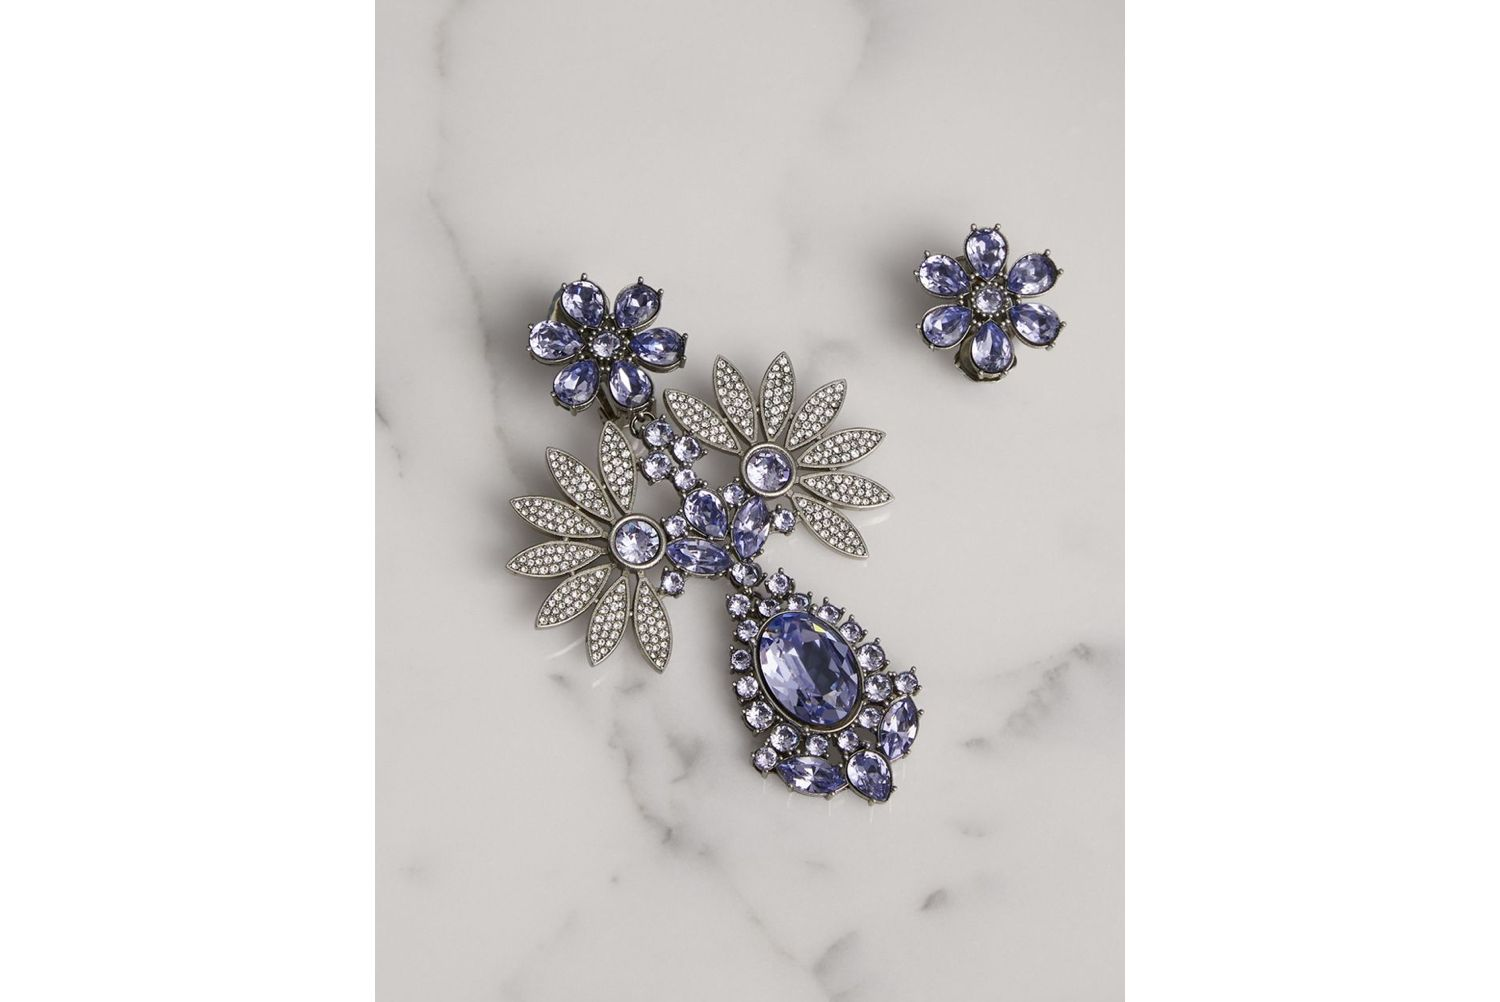 Crystal Double-daisy Drop Earring and Stud Set in Lavender Blue